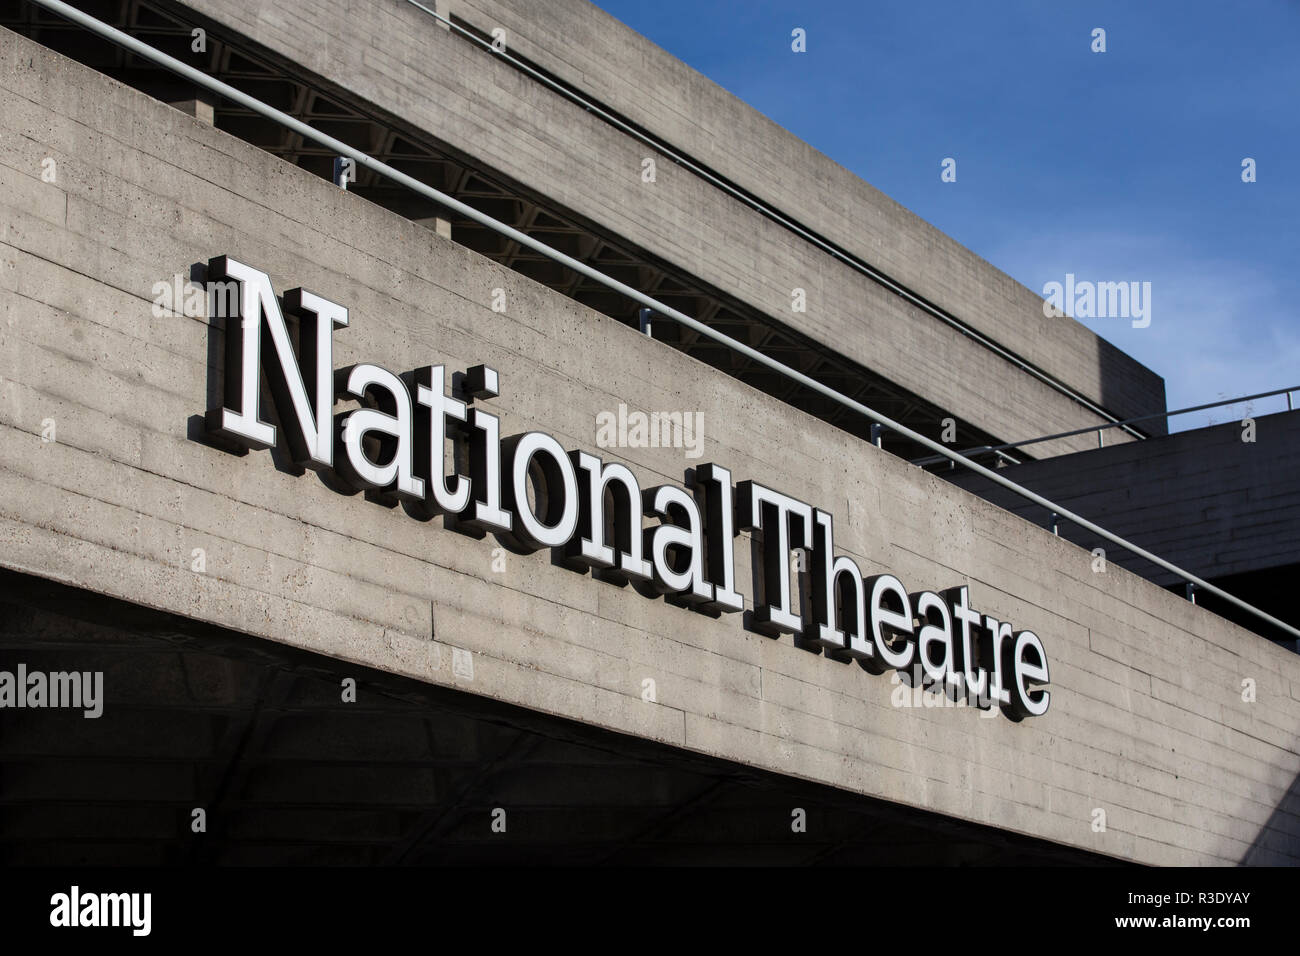 The Royal National Theatre in London, commonly known as the National Theatre, one of the UK's most prominent publicly funded performing art venues, UK - Stock Image